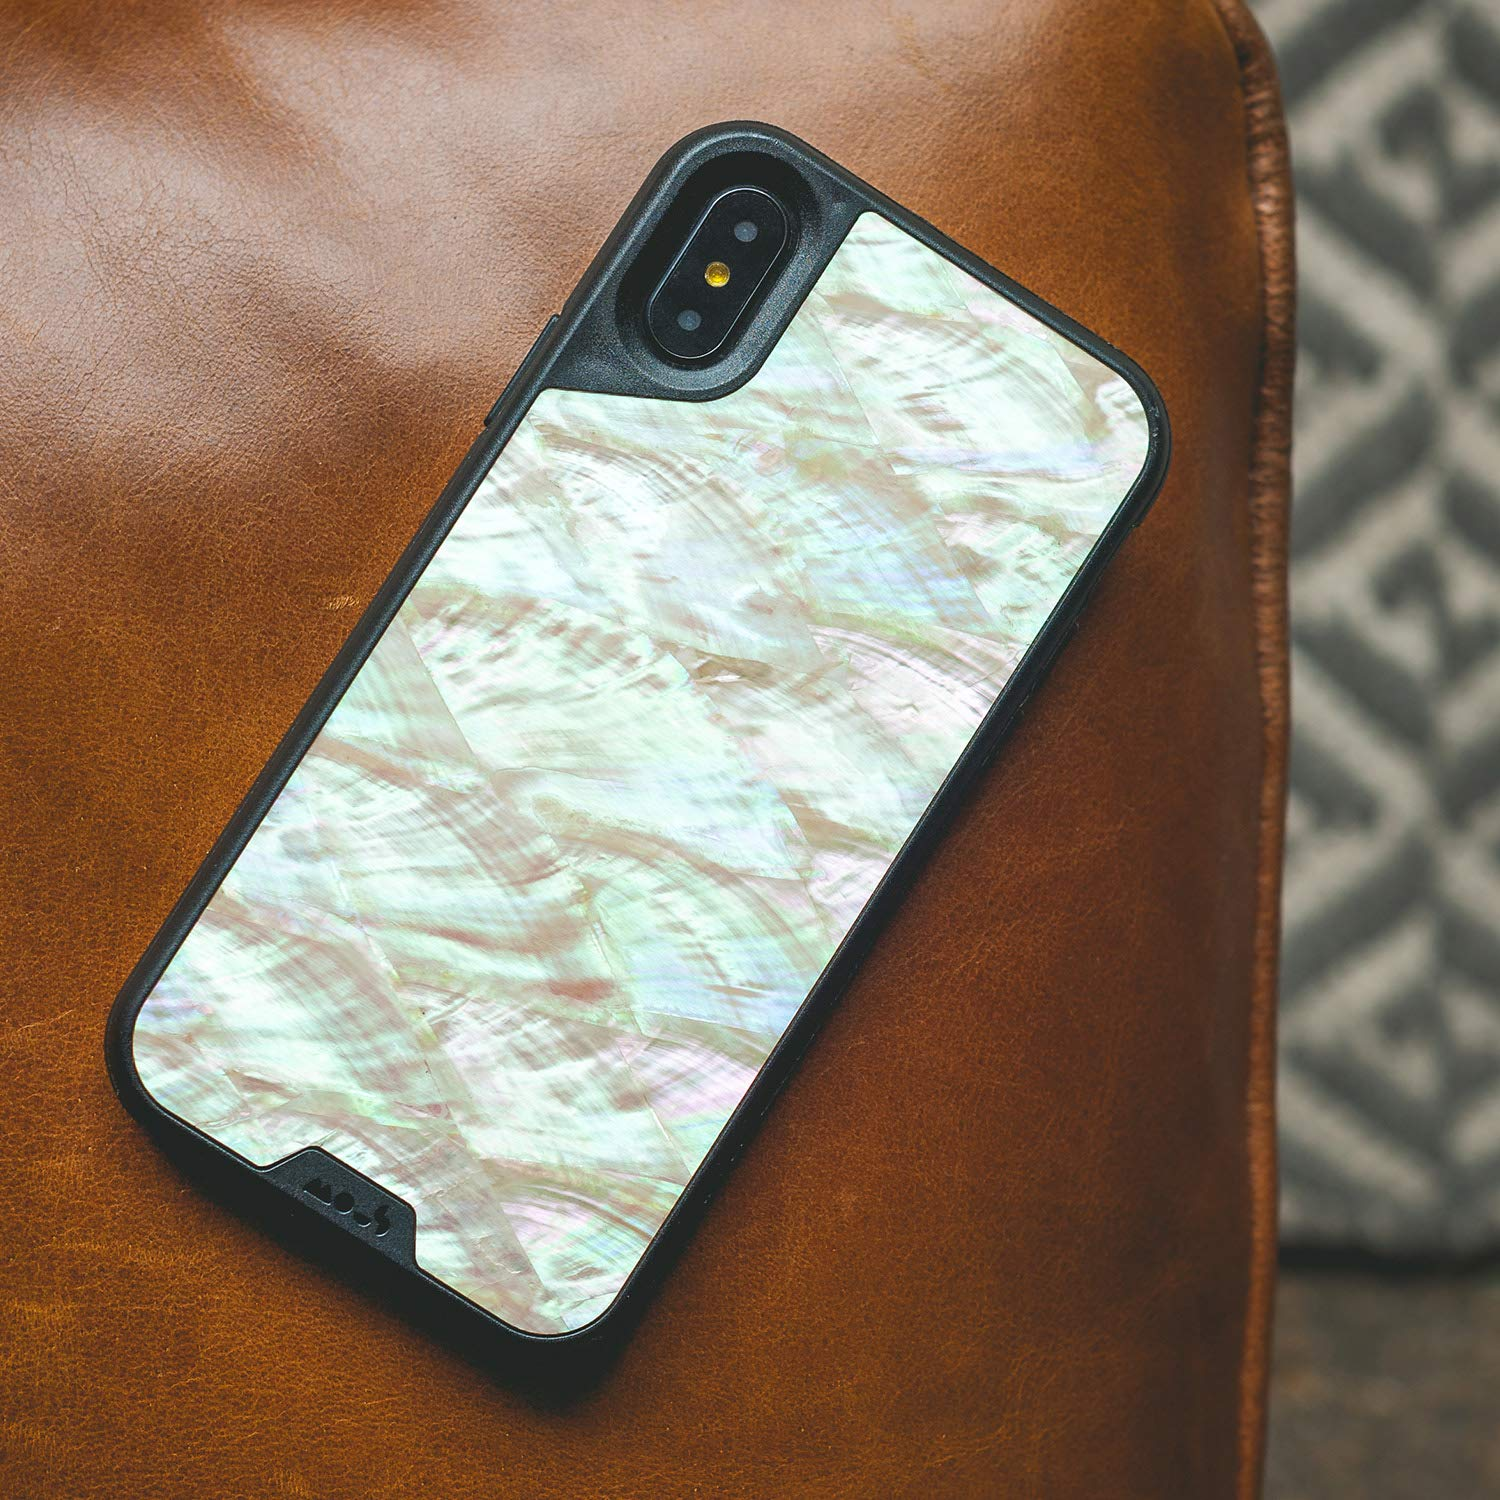 Real Walnut Wood Screen Protector Inc. Mous Protective iPhone X//XS Case